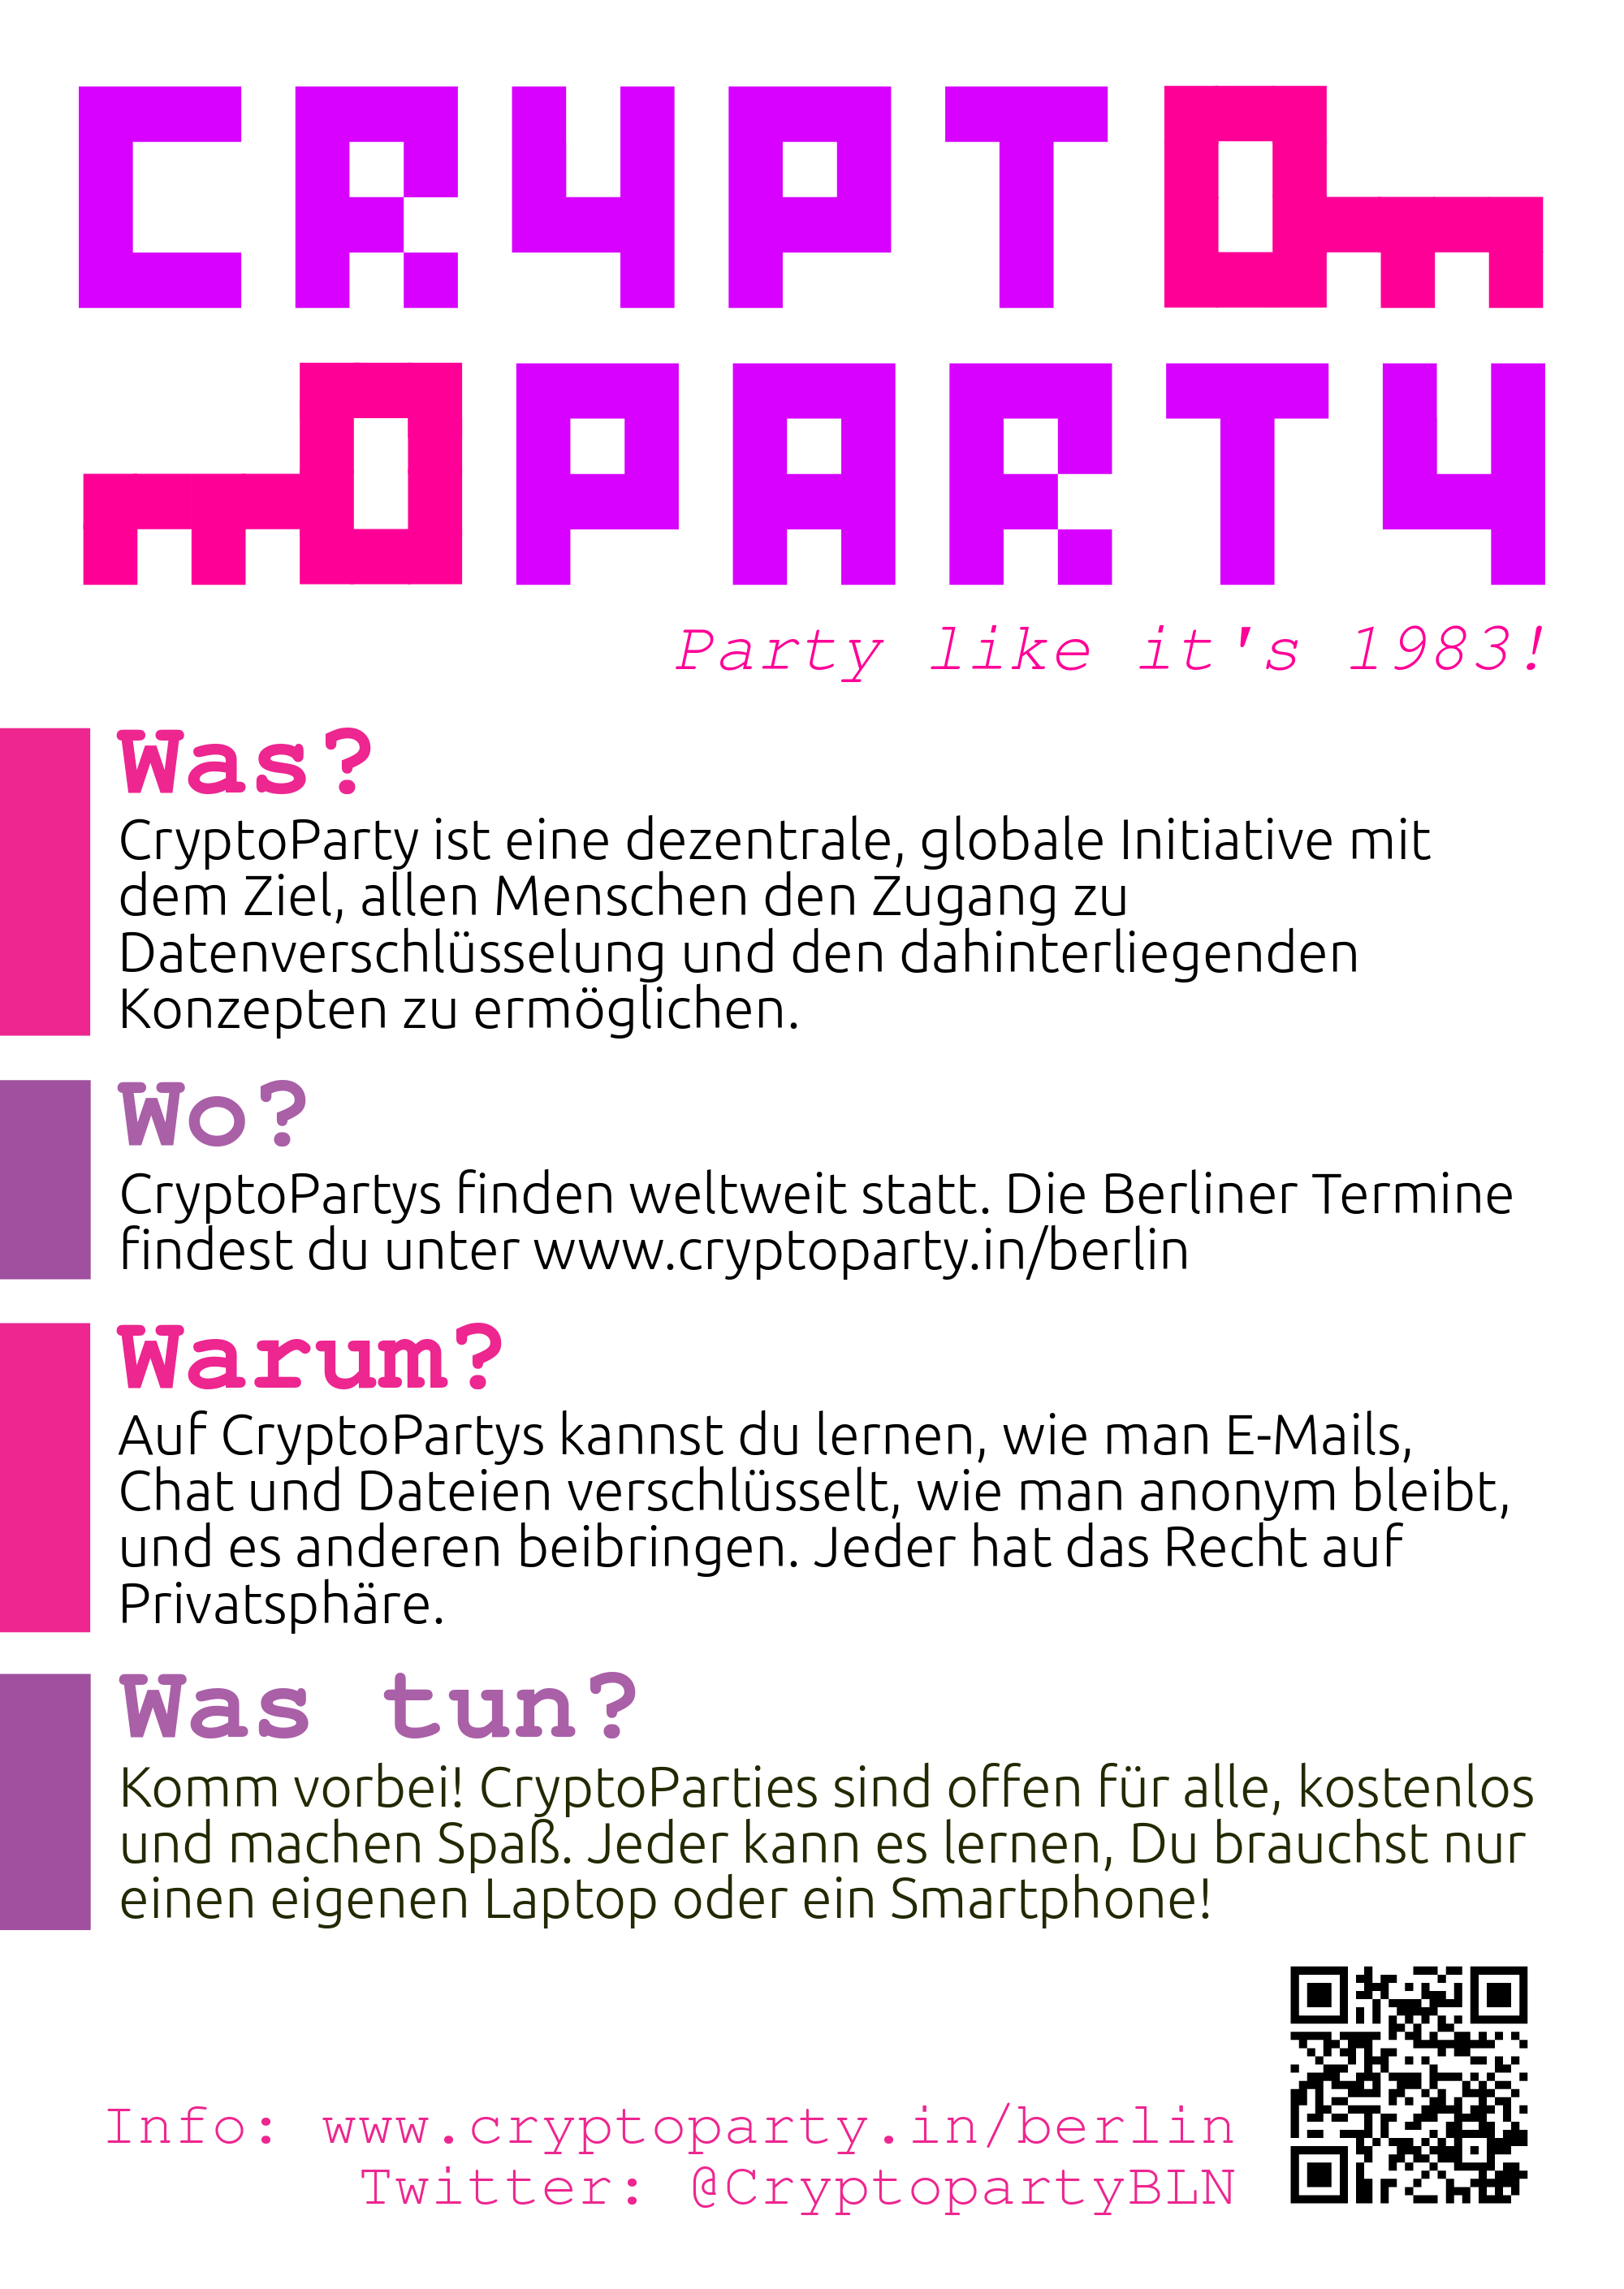 Party like it's 1983!